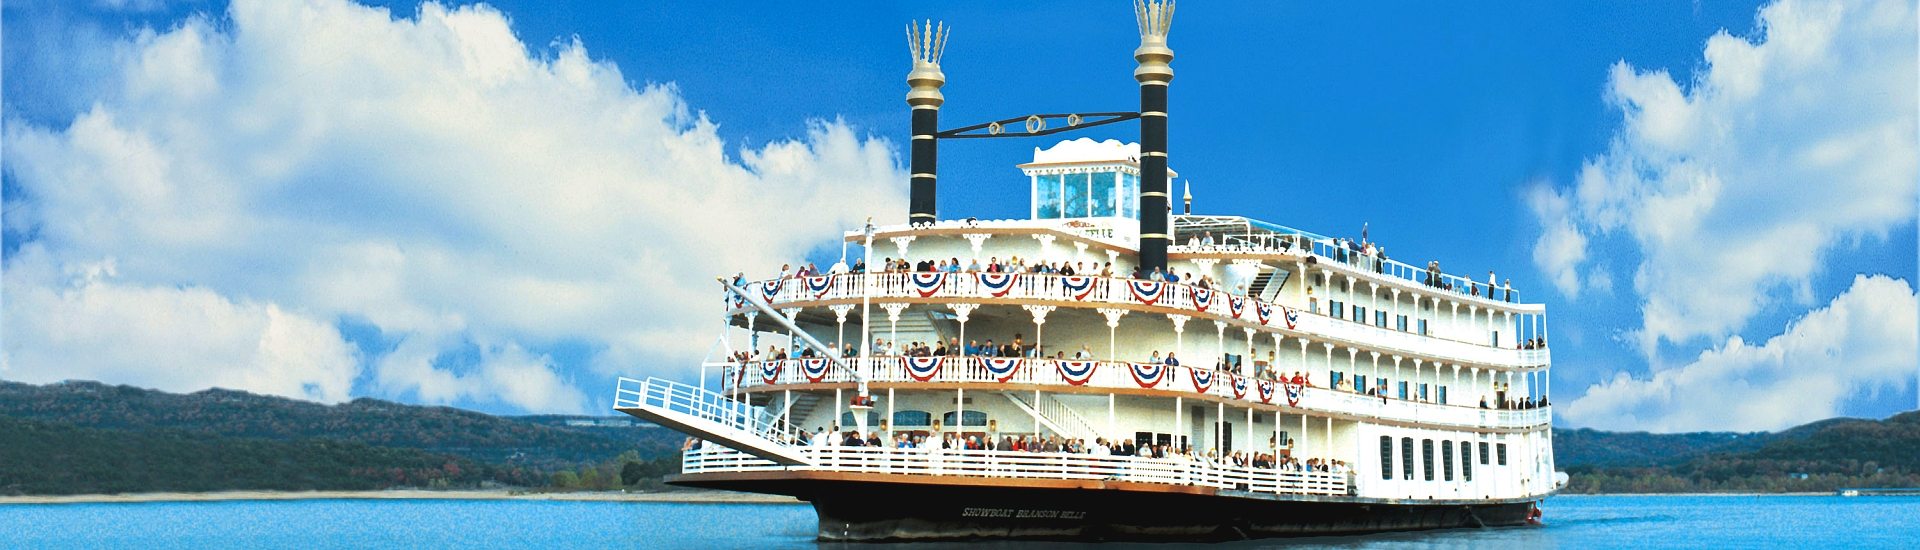 showboat branson belle - dinner cruise & show - branson travel office